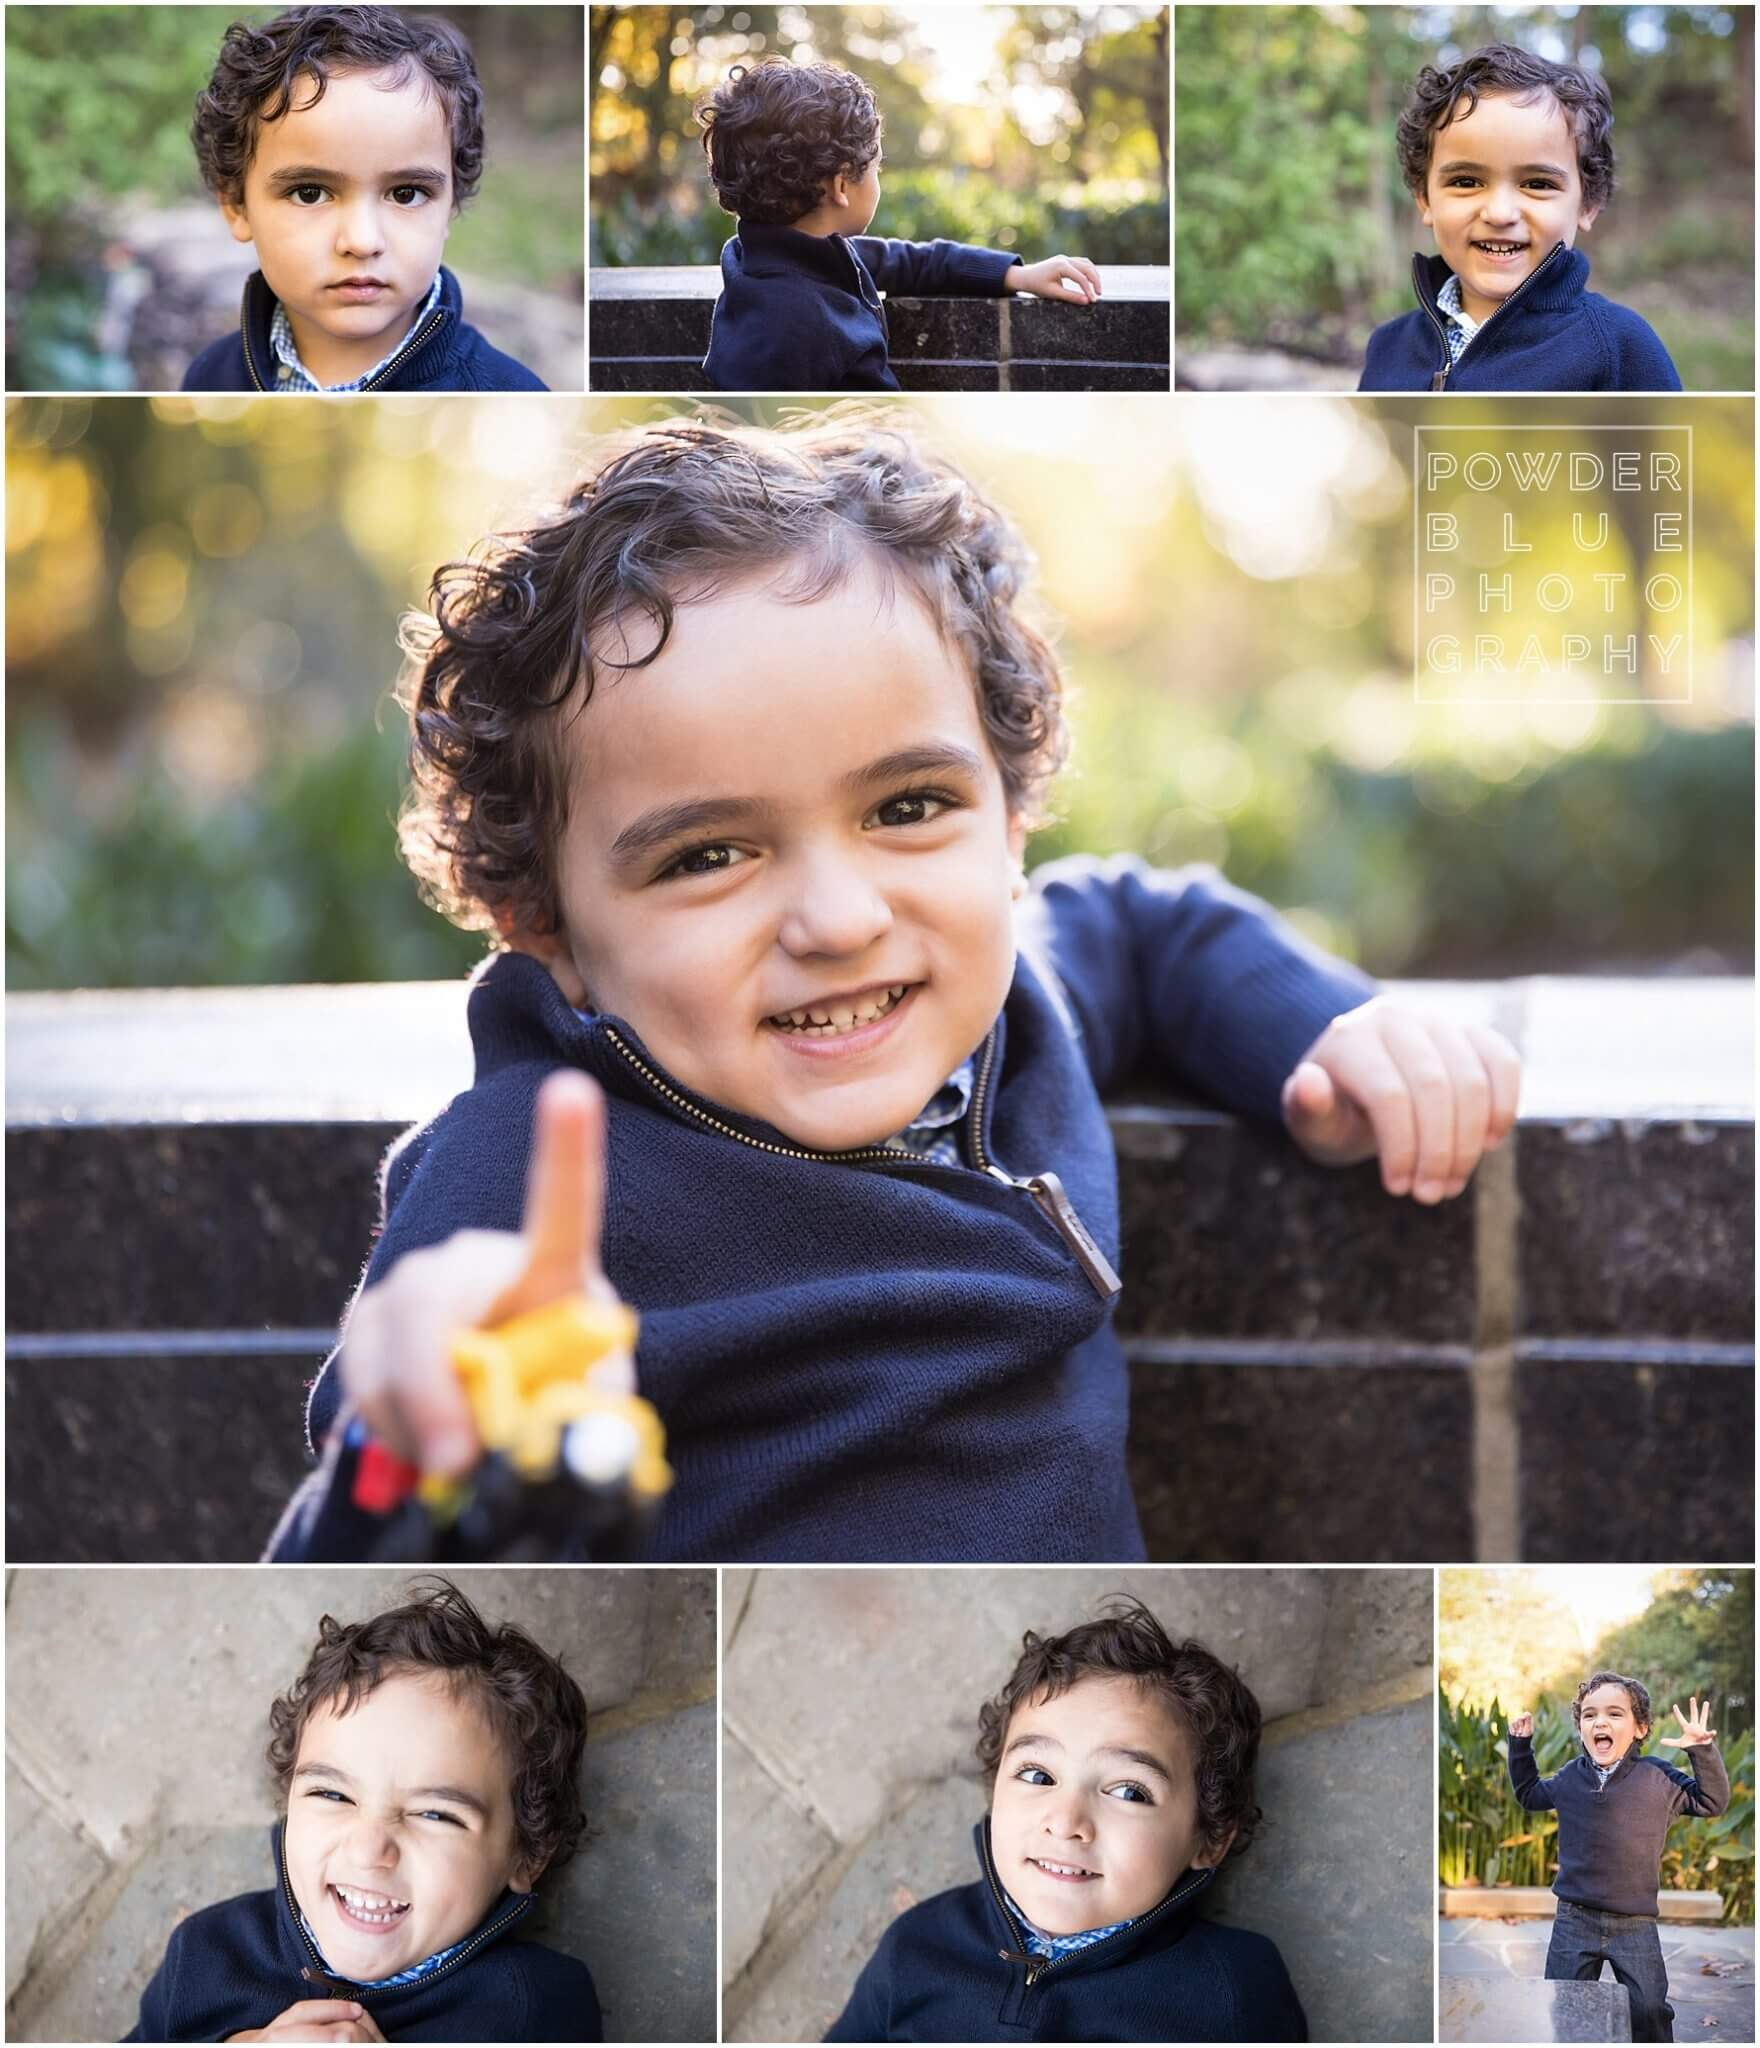 pittsburgh family photographer portrait session at schenley park in pittsburgh. westinghouse memorial pittsburgh.